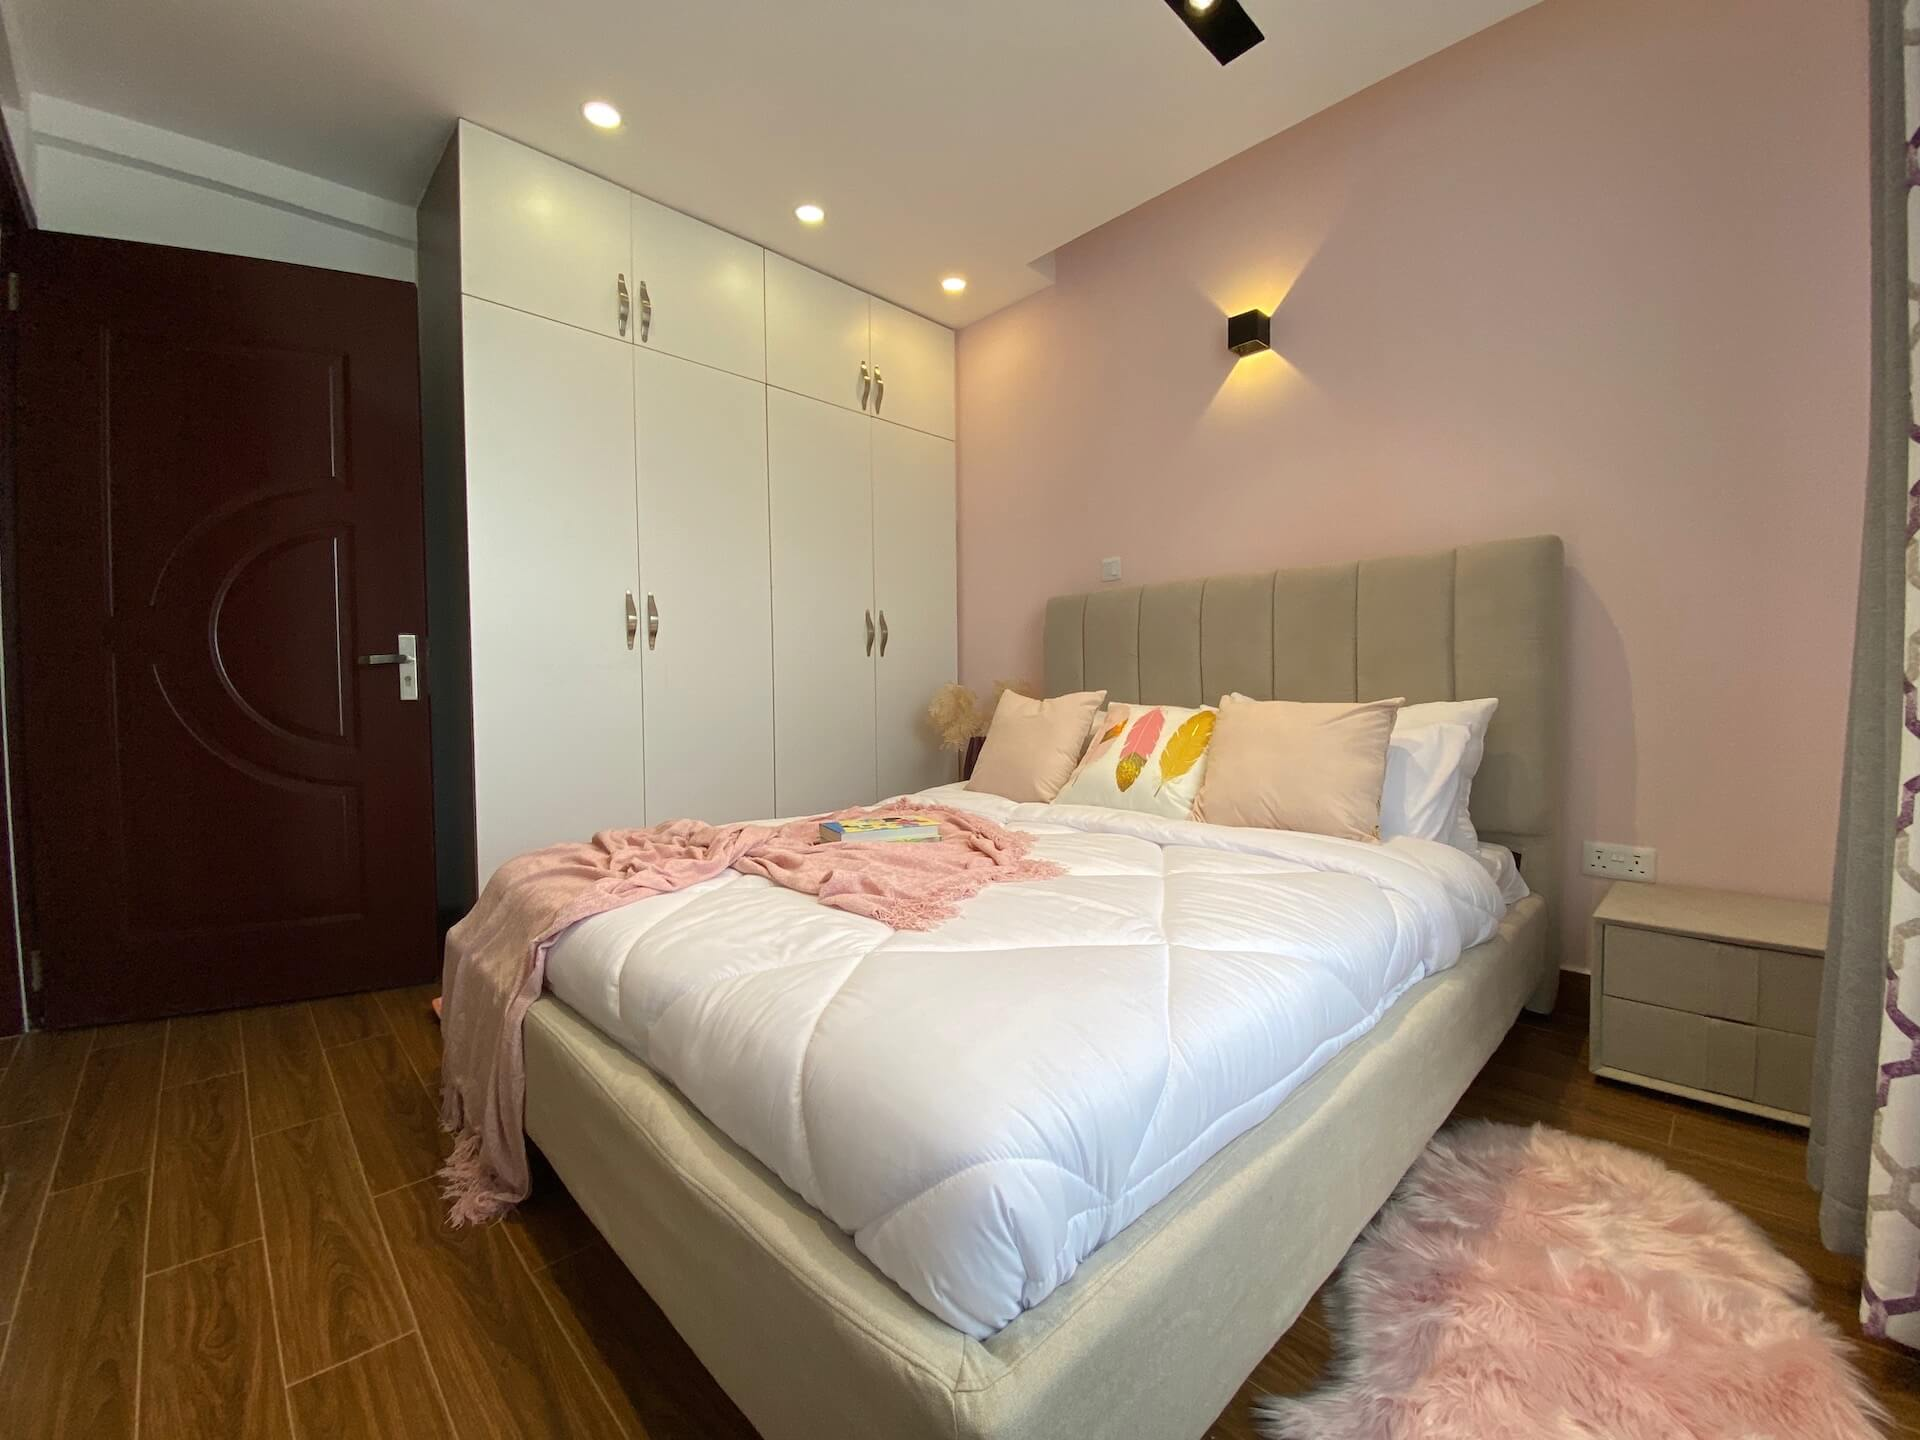 a fully furnished bedroom with pink walls